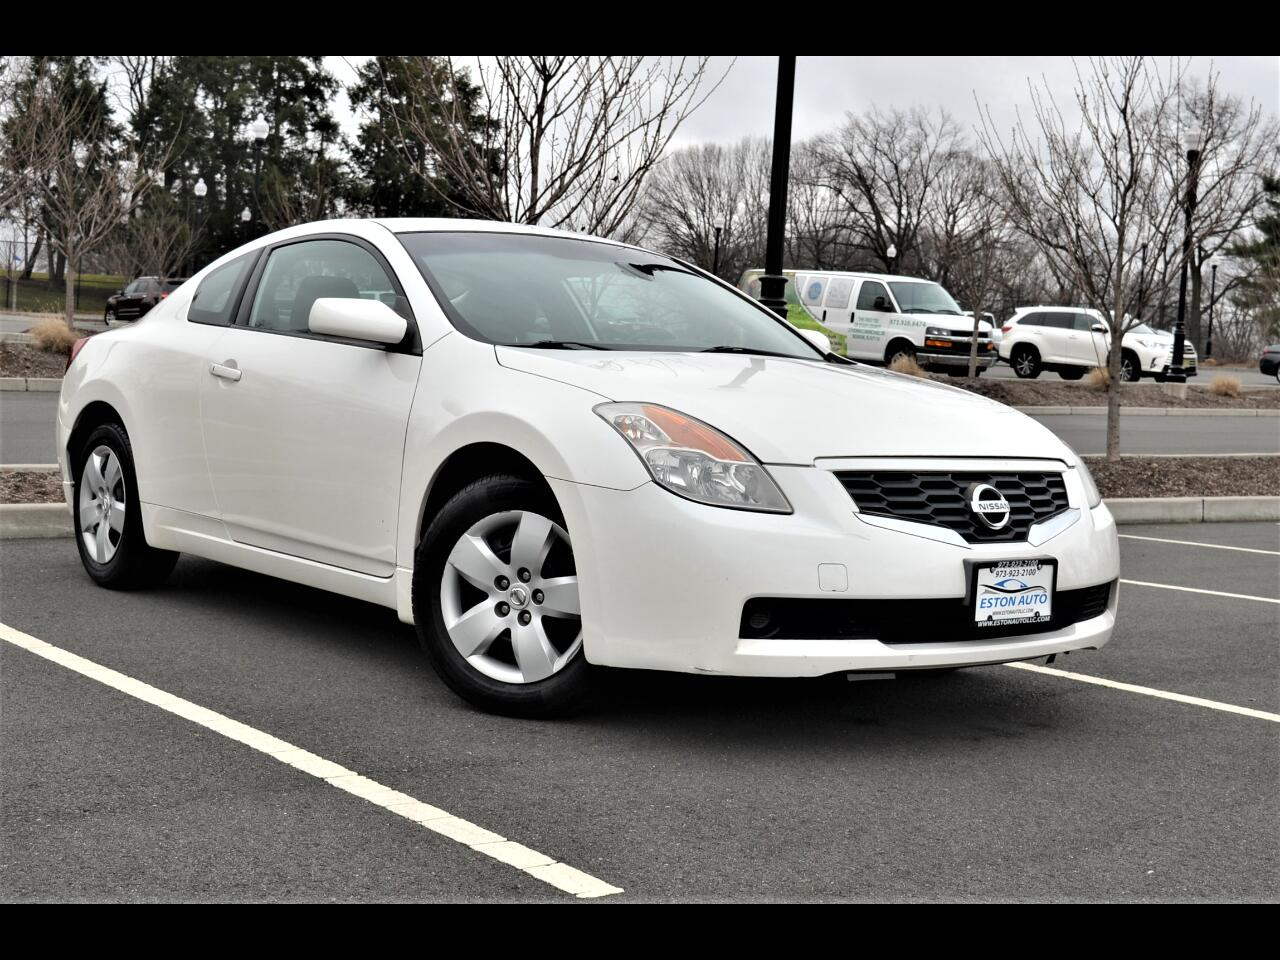 Nissan Altima 2dr Cpe I4 Man 2.5 S 2008